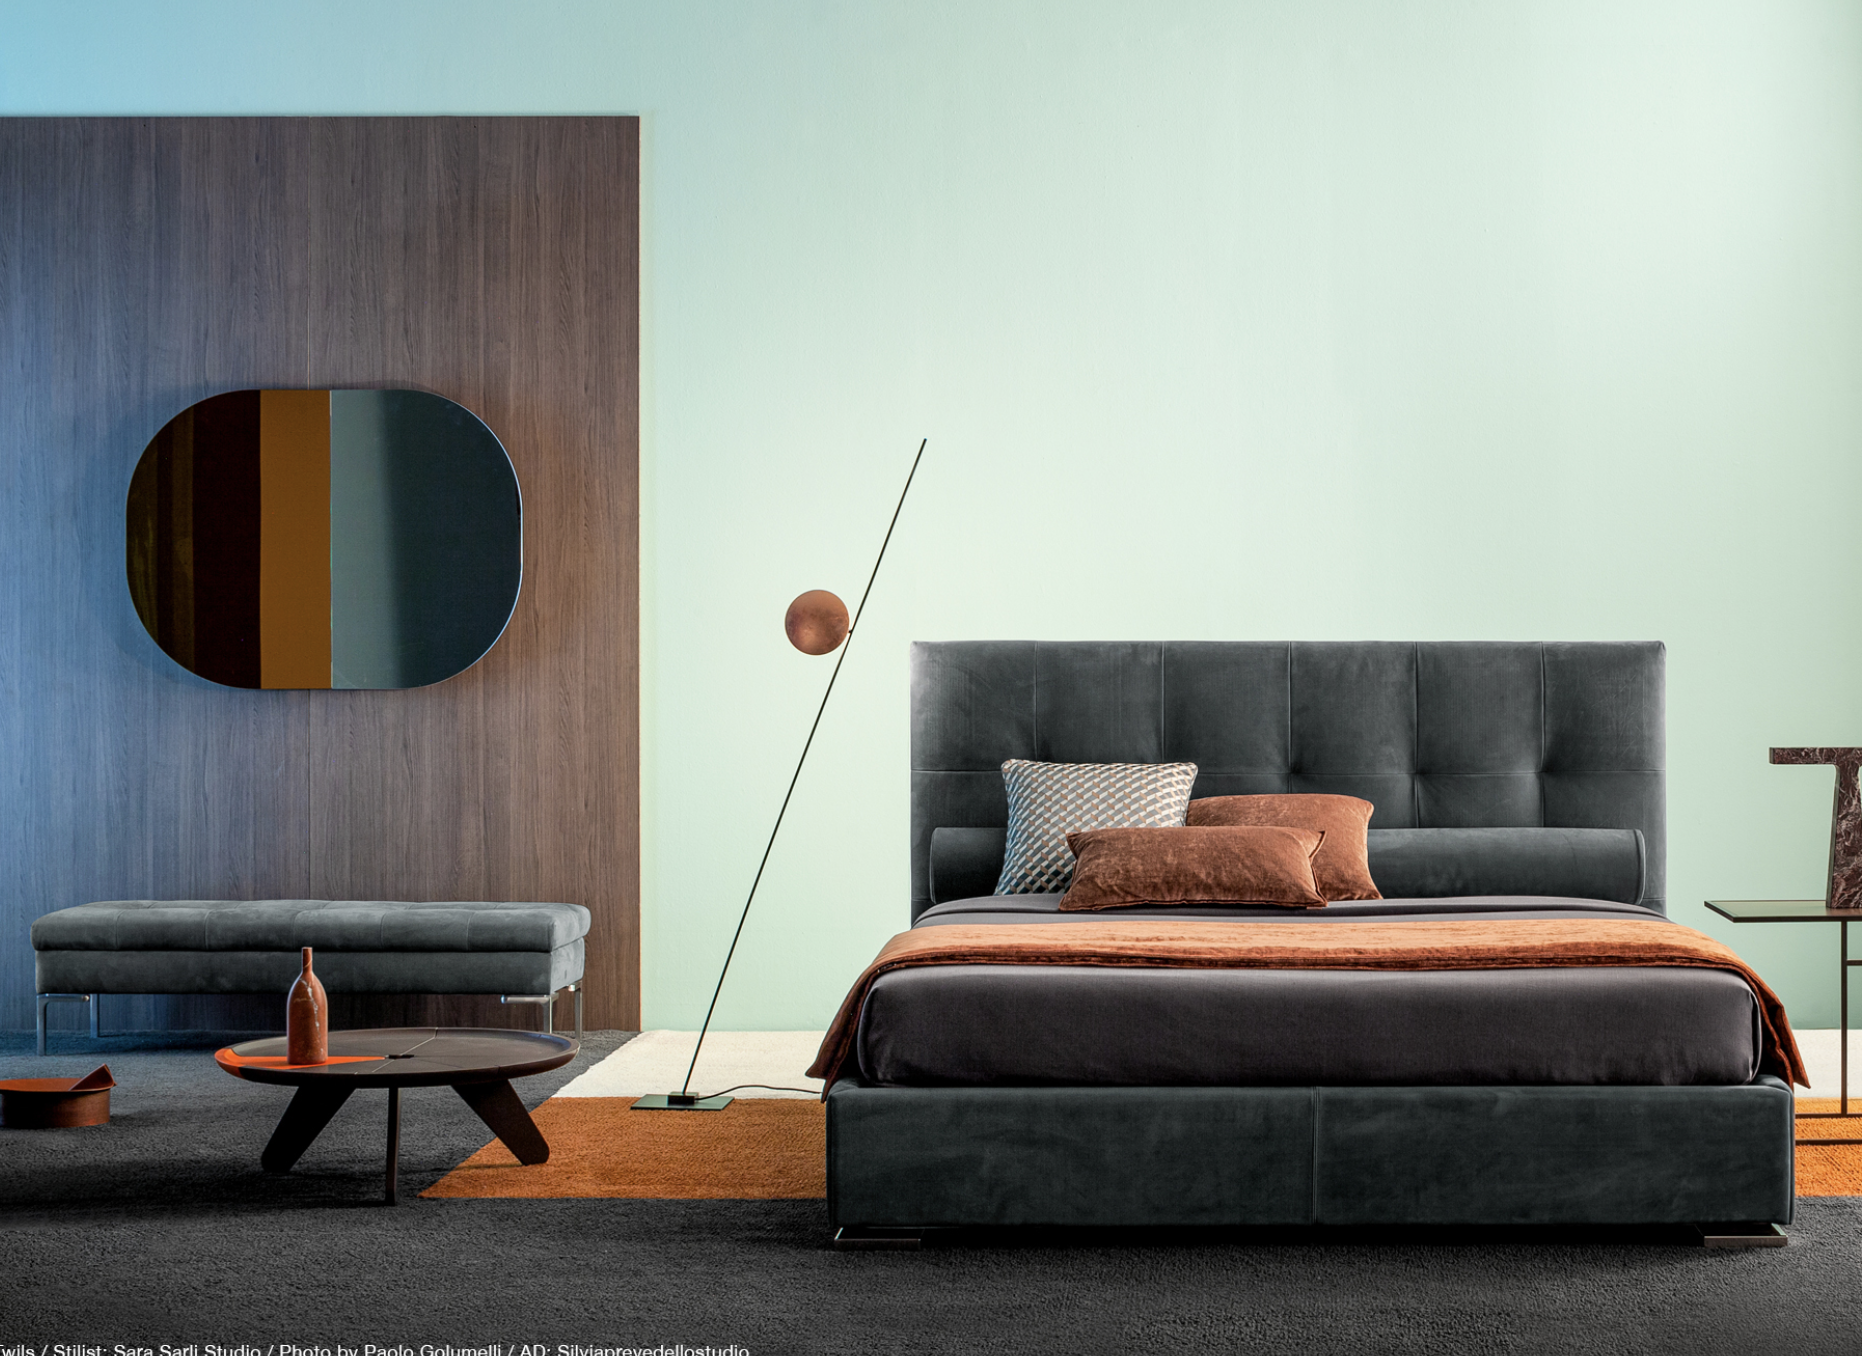 Lederam F1 Floor Lamp - Lederam embodies the accuracy of the motion required to draw a line. The warm, softly coloured disks surround a LED module with an ultra-flat shape, which creates thin lamps and suspended forms with curved, sinuous lines   Matter of Stuff